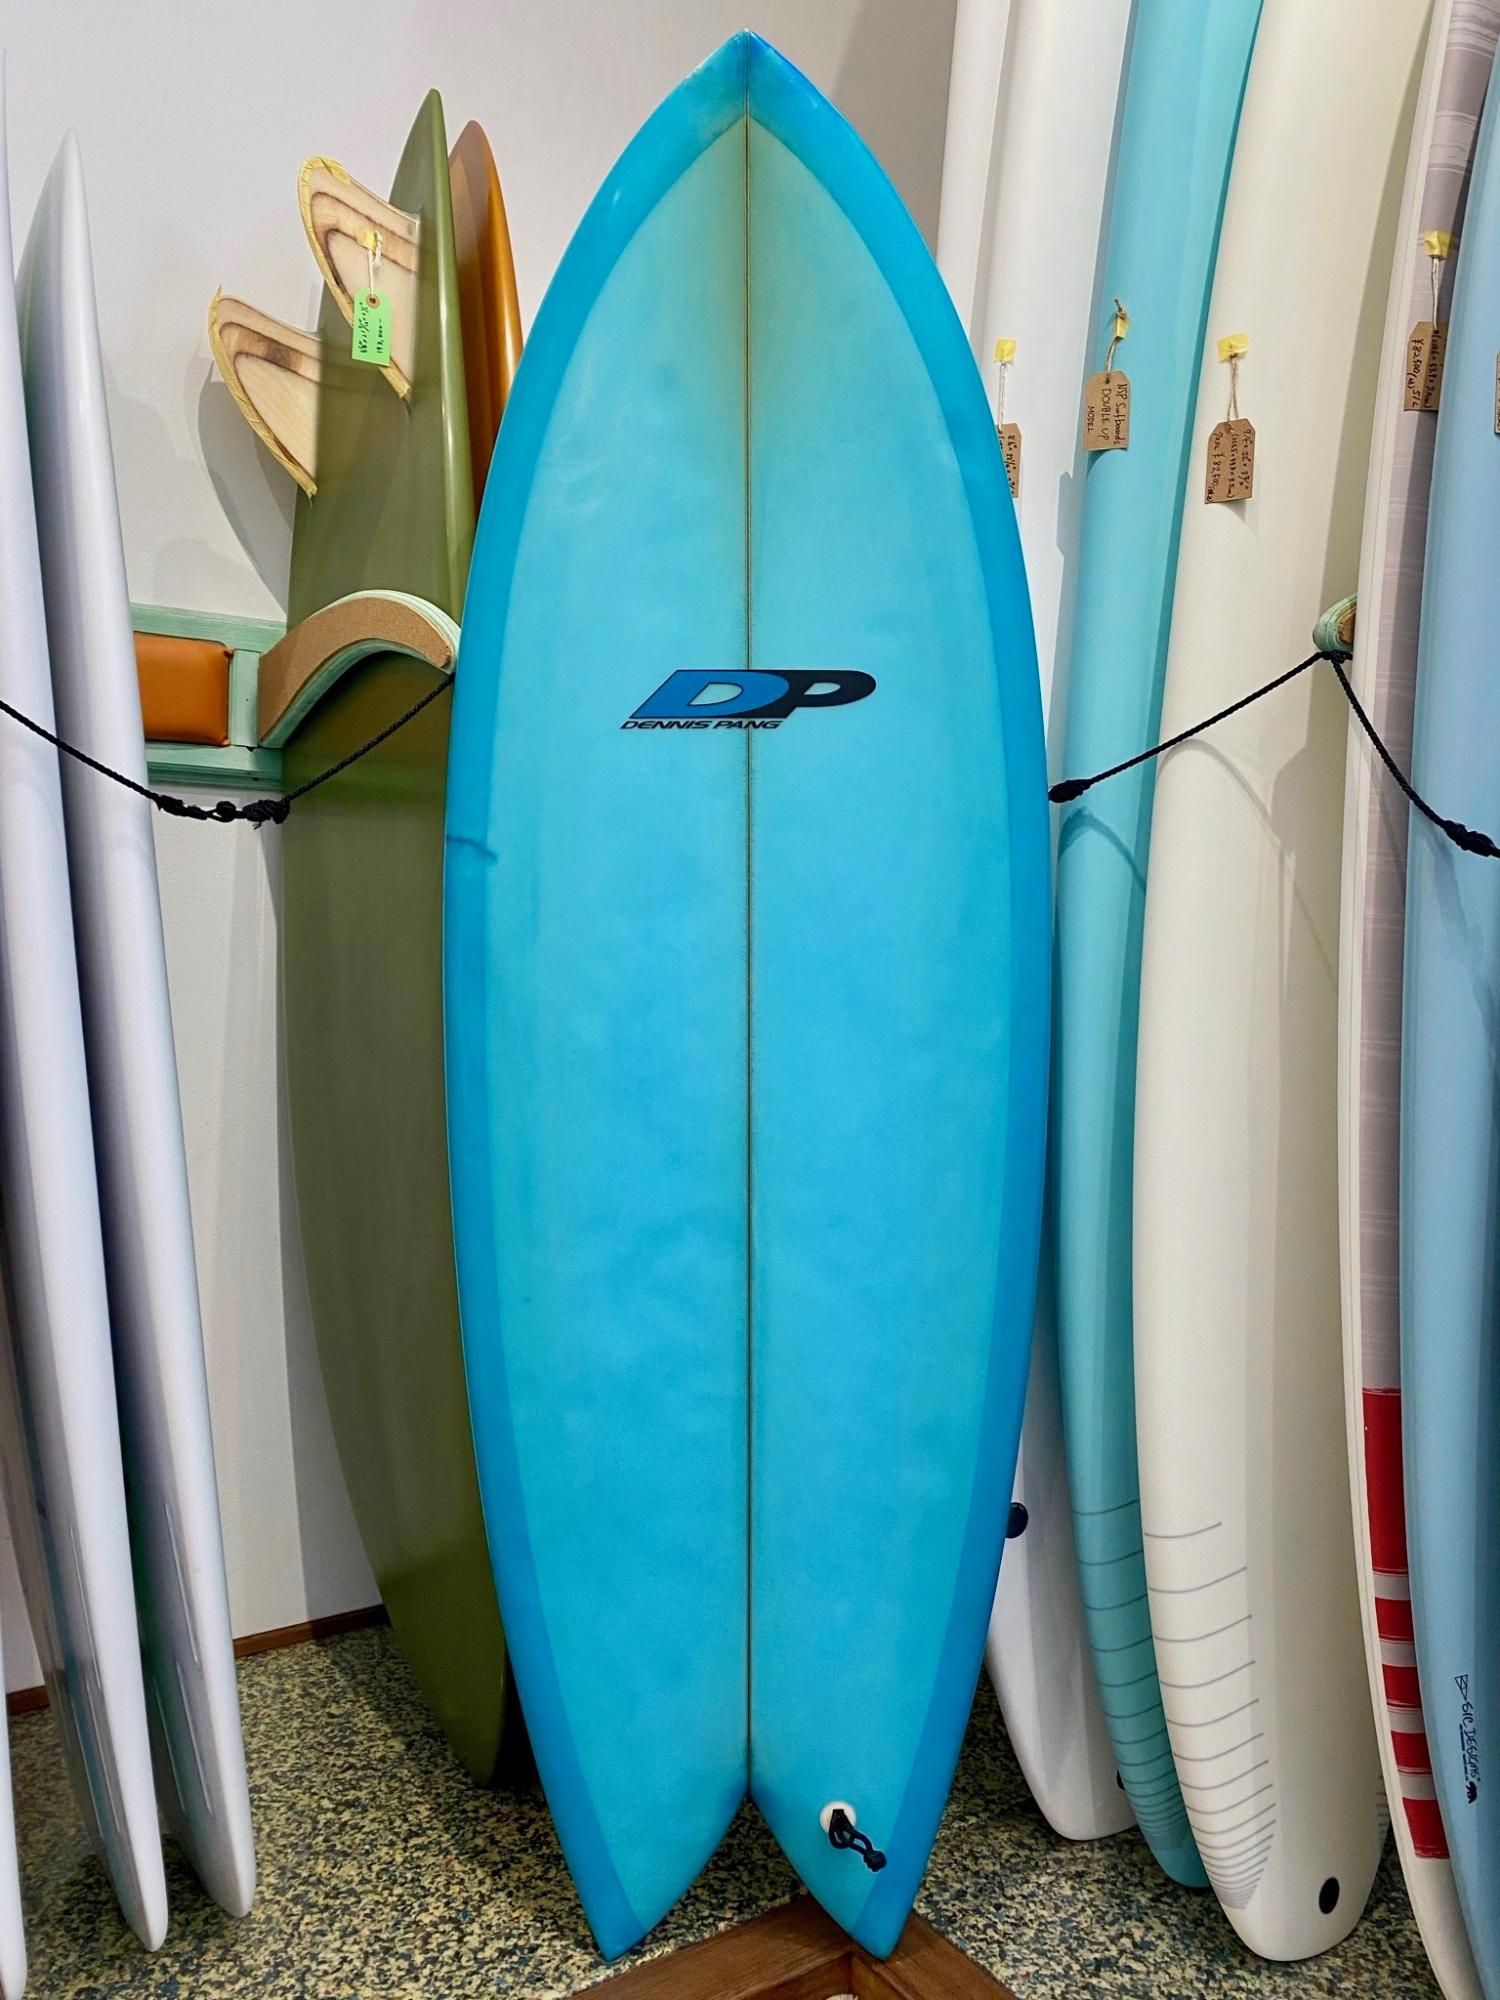 USED BOARDS (DENNIS PANG Surfboards Twin Fish 5.4)